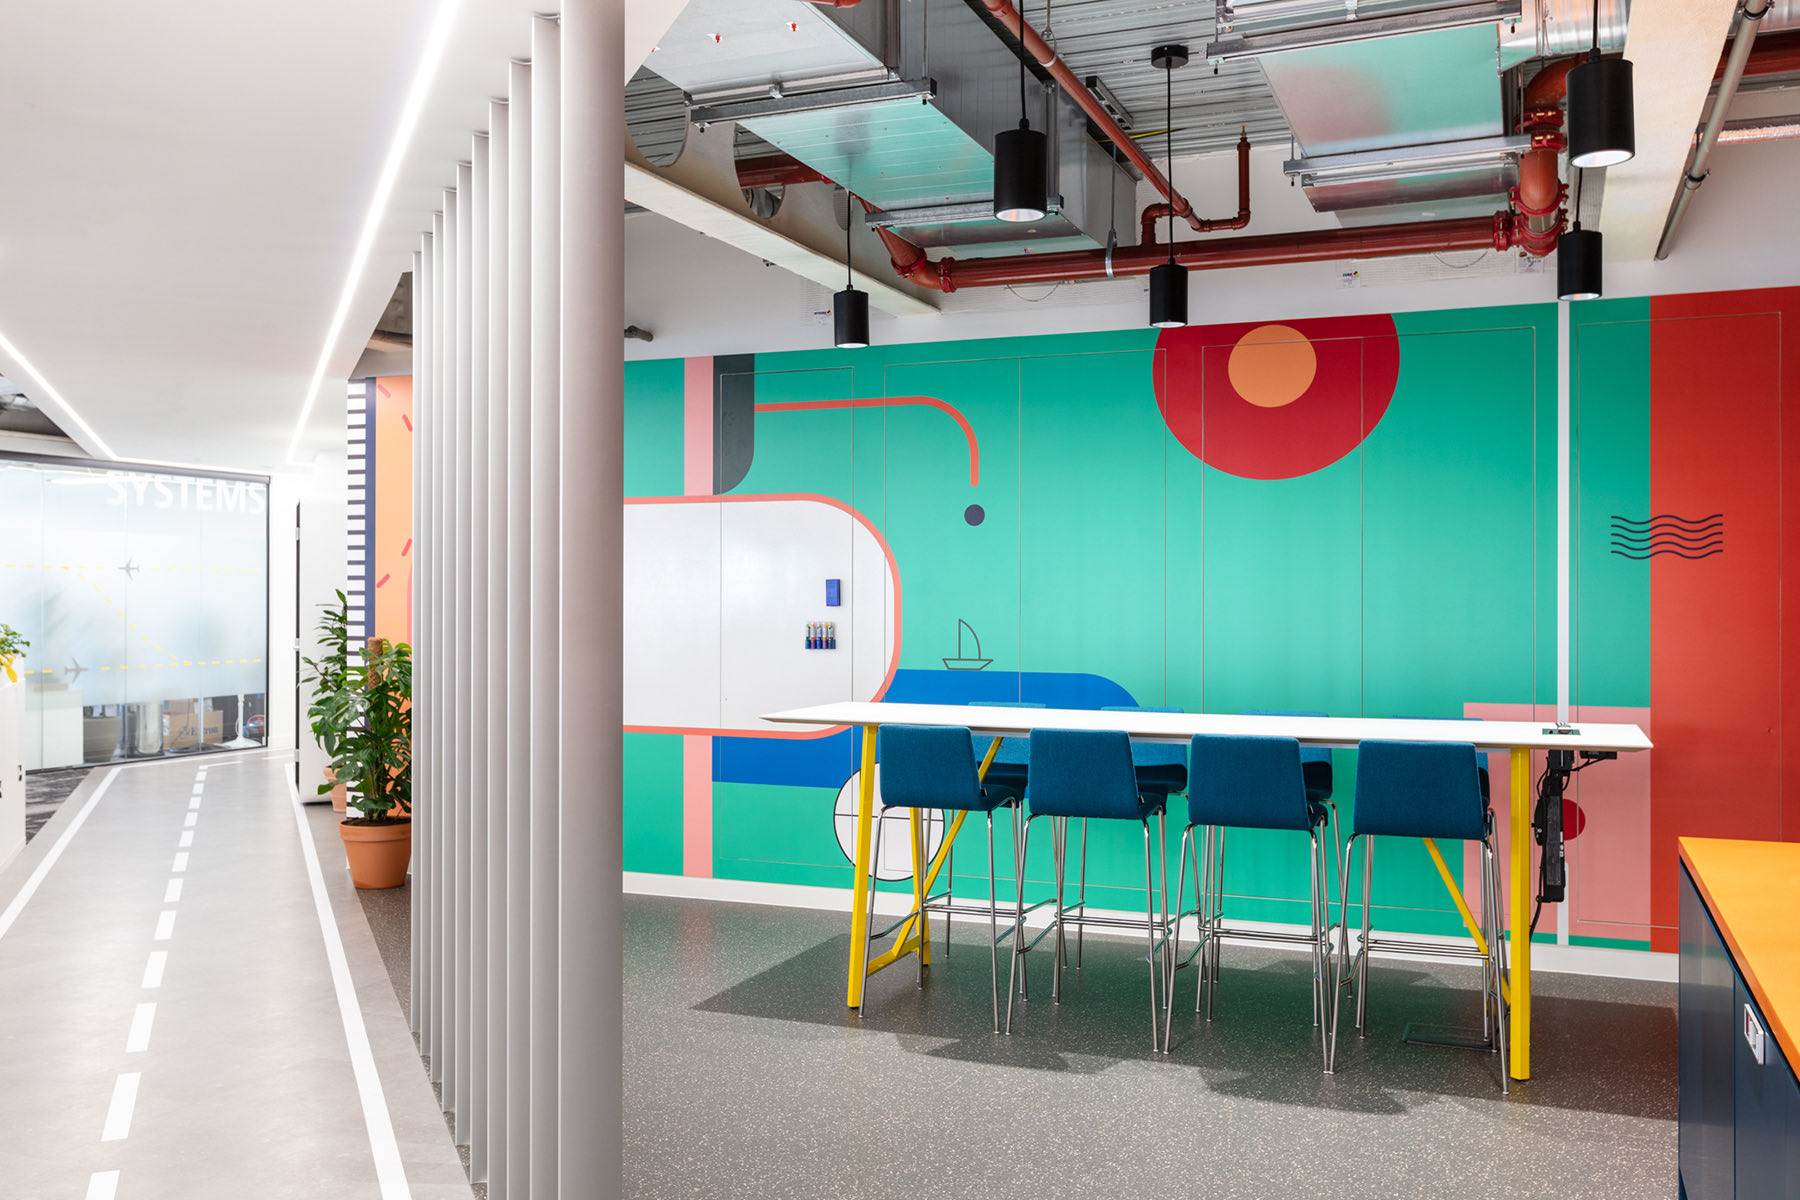 A Tour Of Travelfusion's Cool New London Office